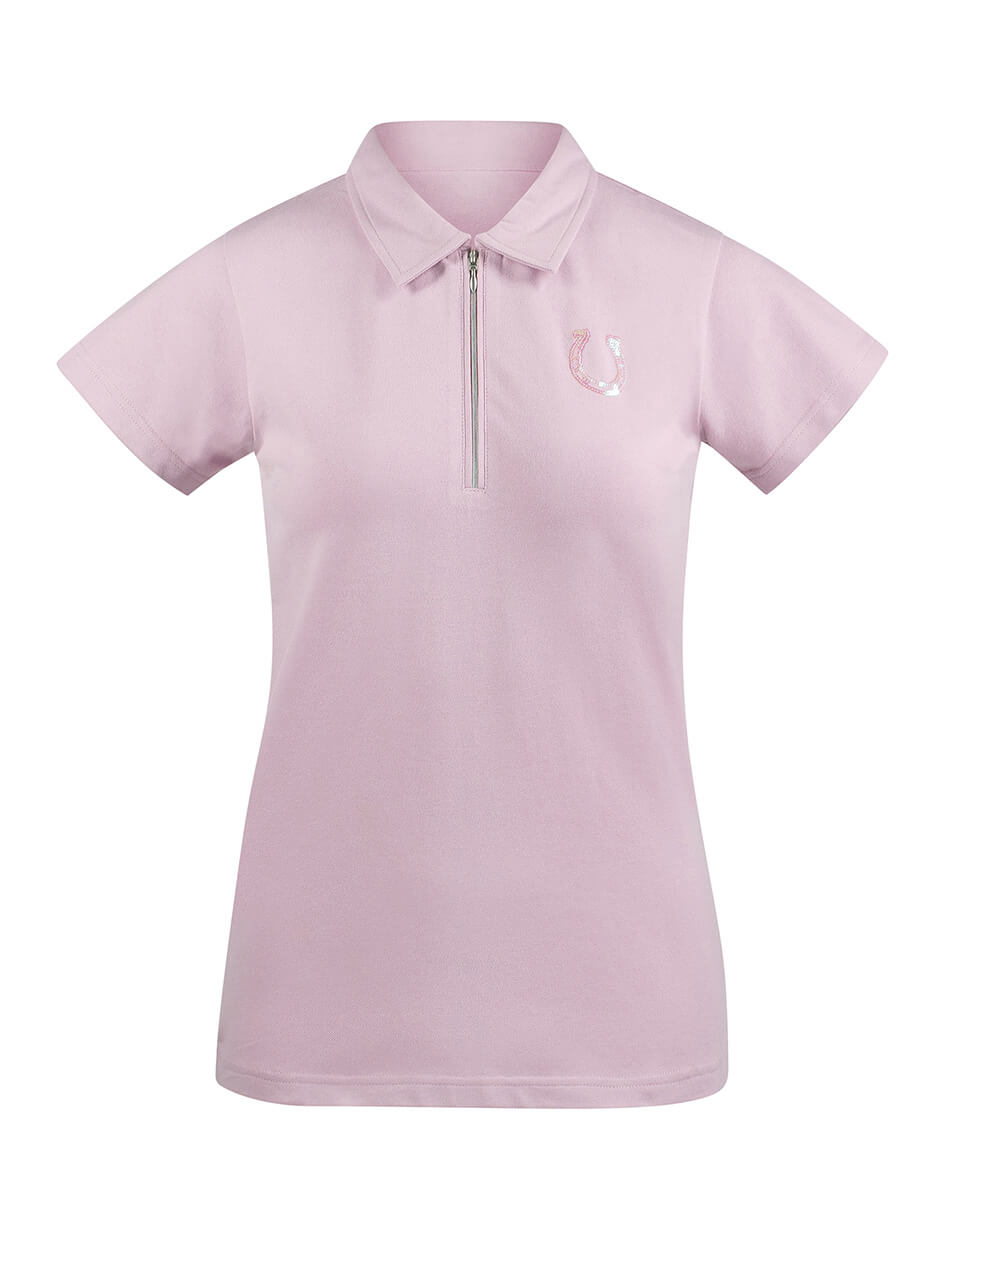 Classy cotton ladies shirt with zipper and sequin design